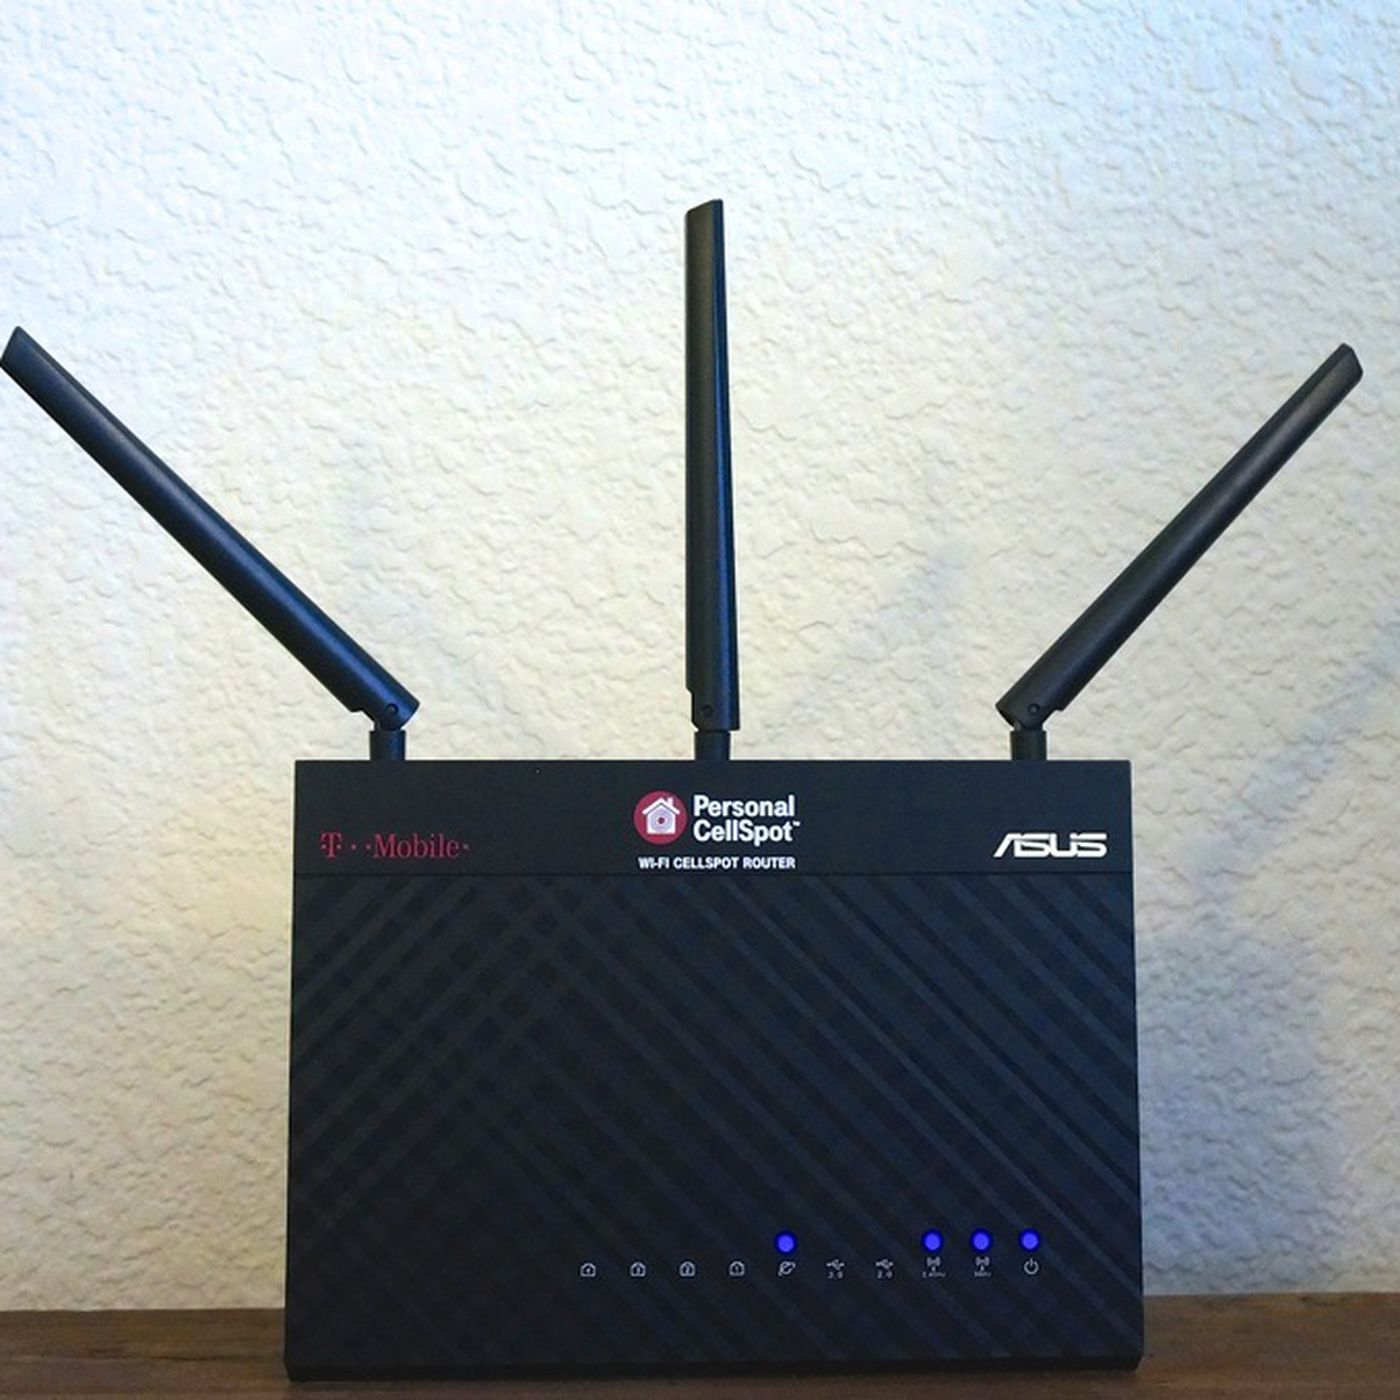 Would you get a new Wi-Fi router just to use your cell phone